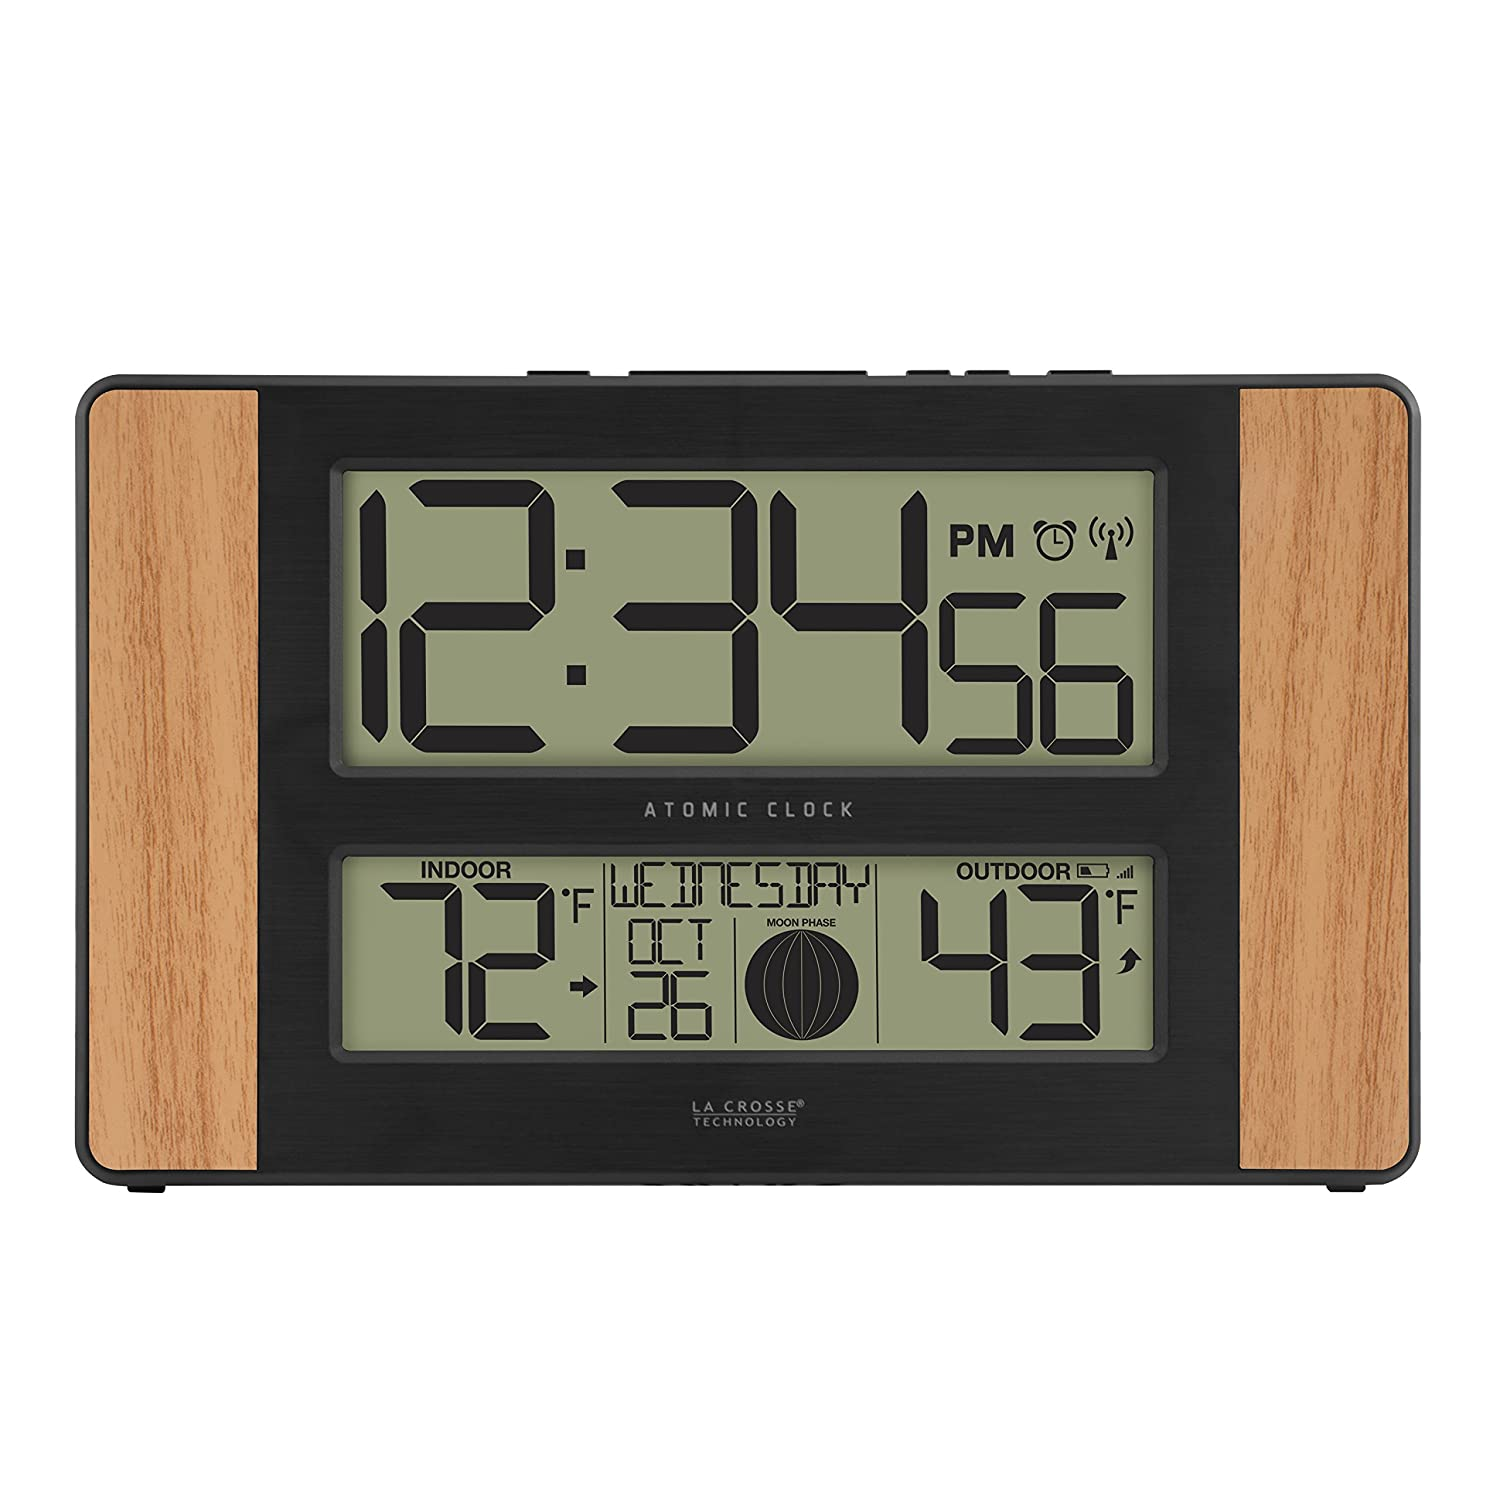 La Crosse Technology 513-1417 Atomic Digital Clock with Outdoor Temperature, Oak Finish